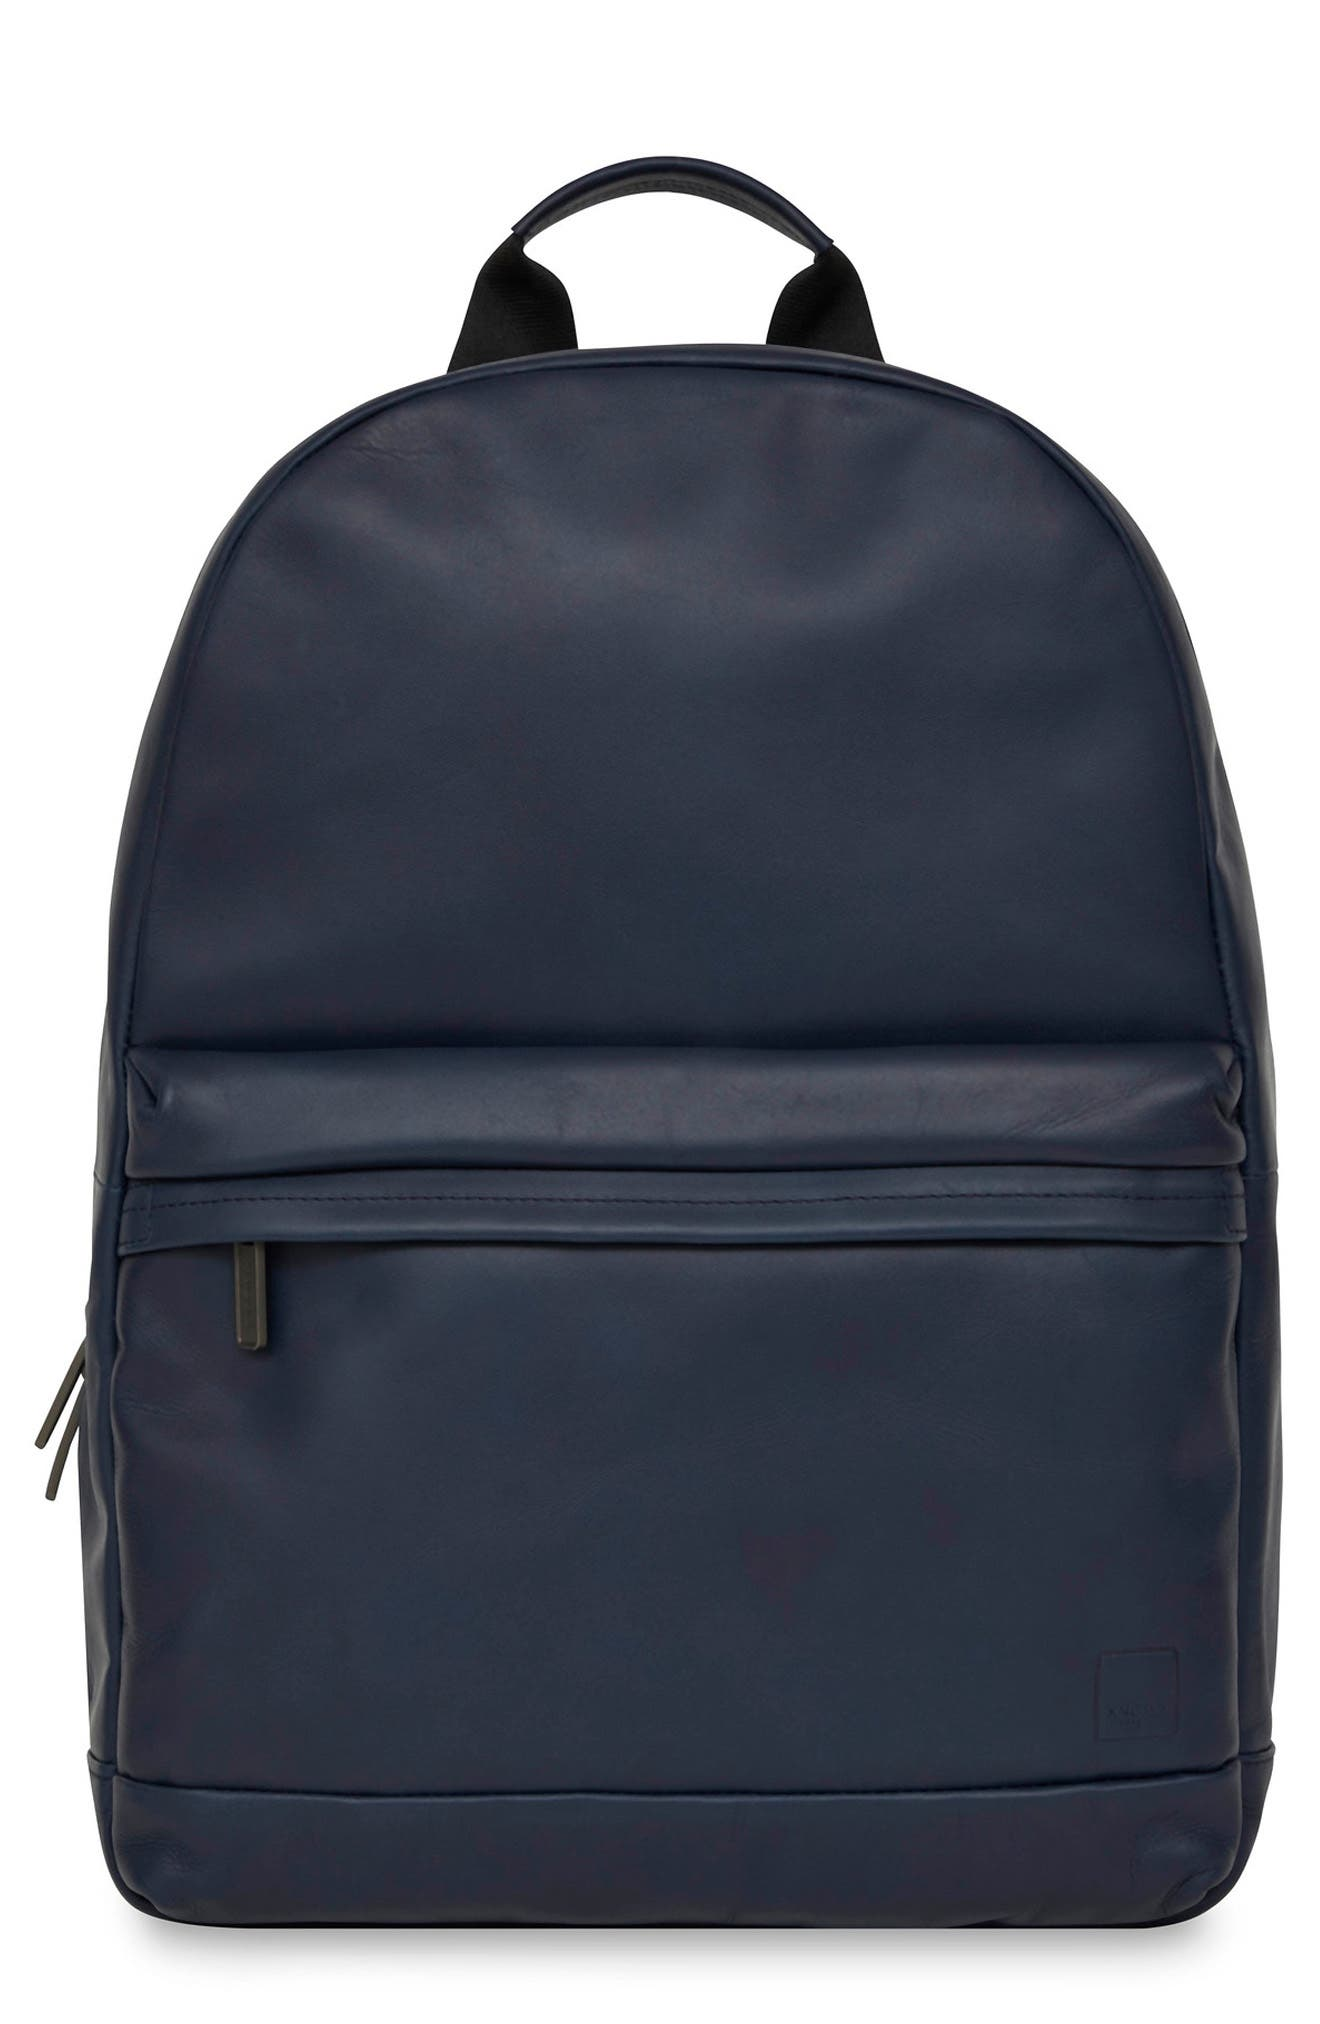 Barbican Albion Leather Backpack,                         Main,                         color, 400